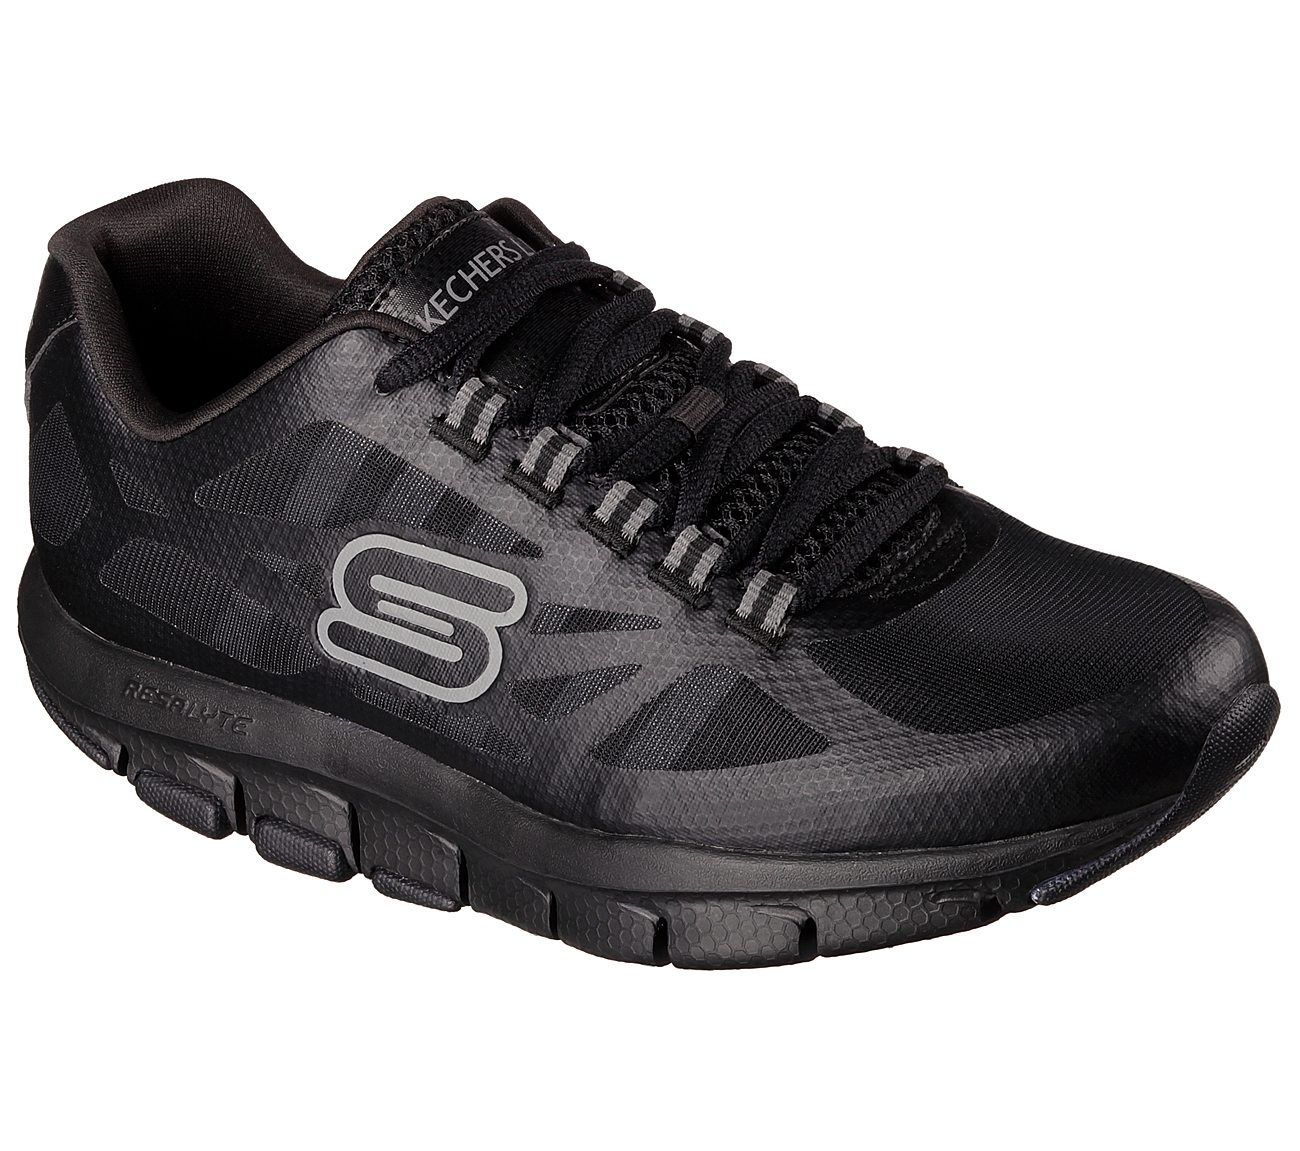 skechers tone ups sandals Sale,up to 64% DiscountsDiscounts